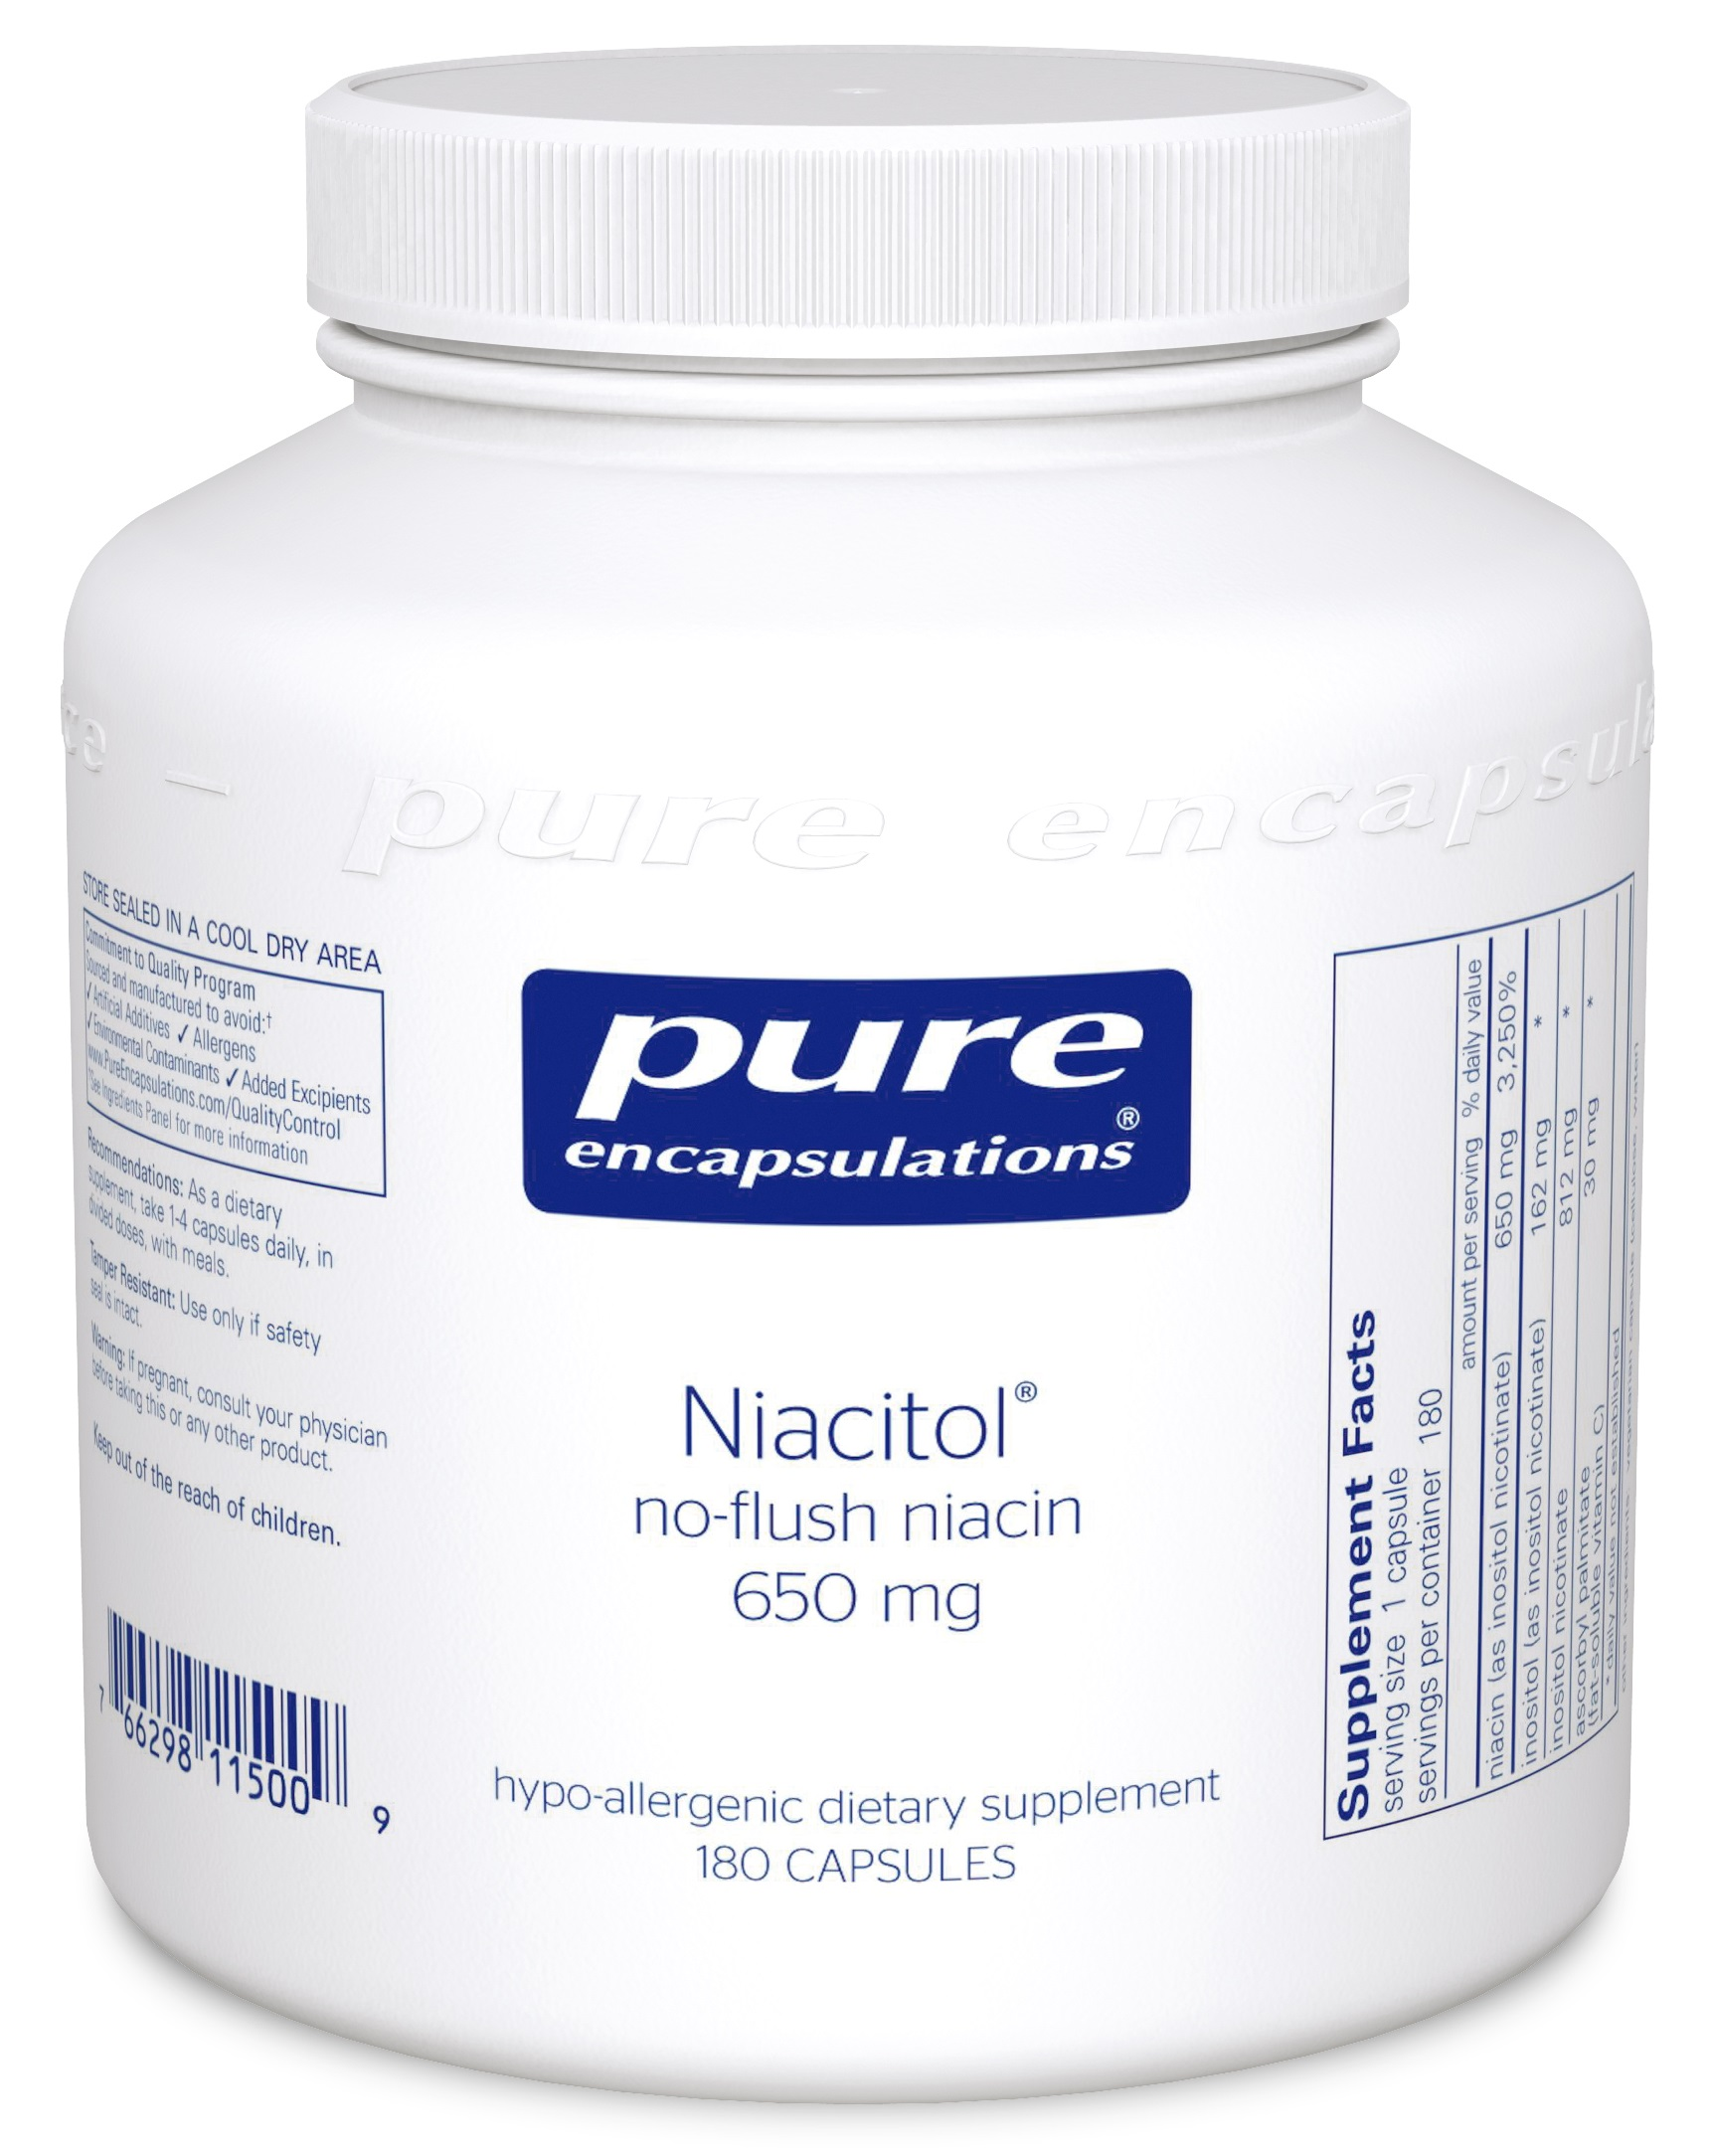 Pure Encapsulations Niacitol 650 mg